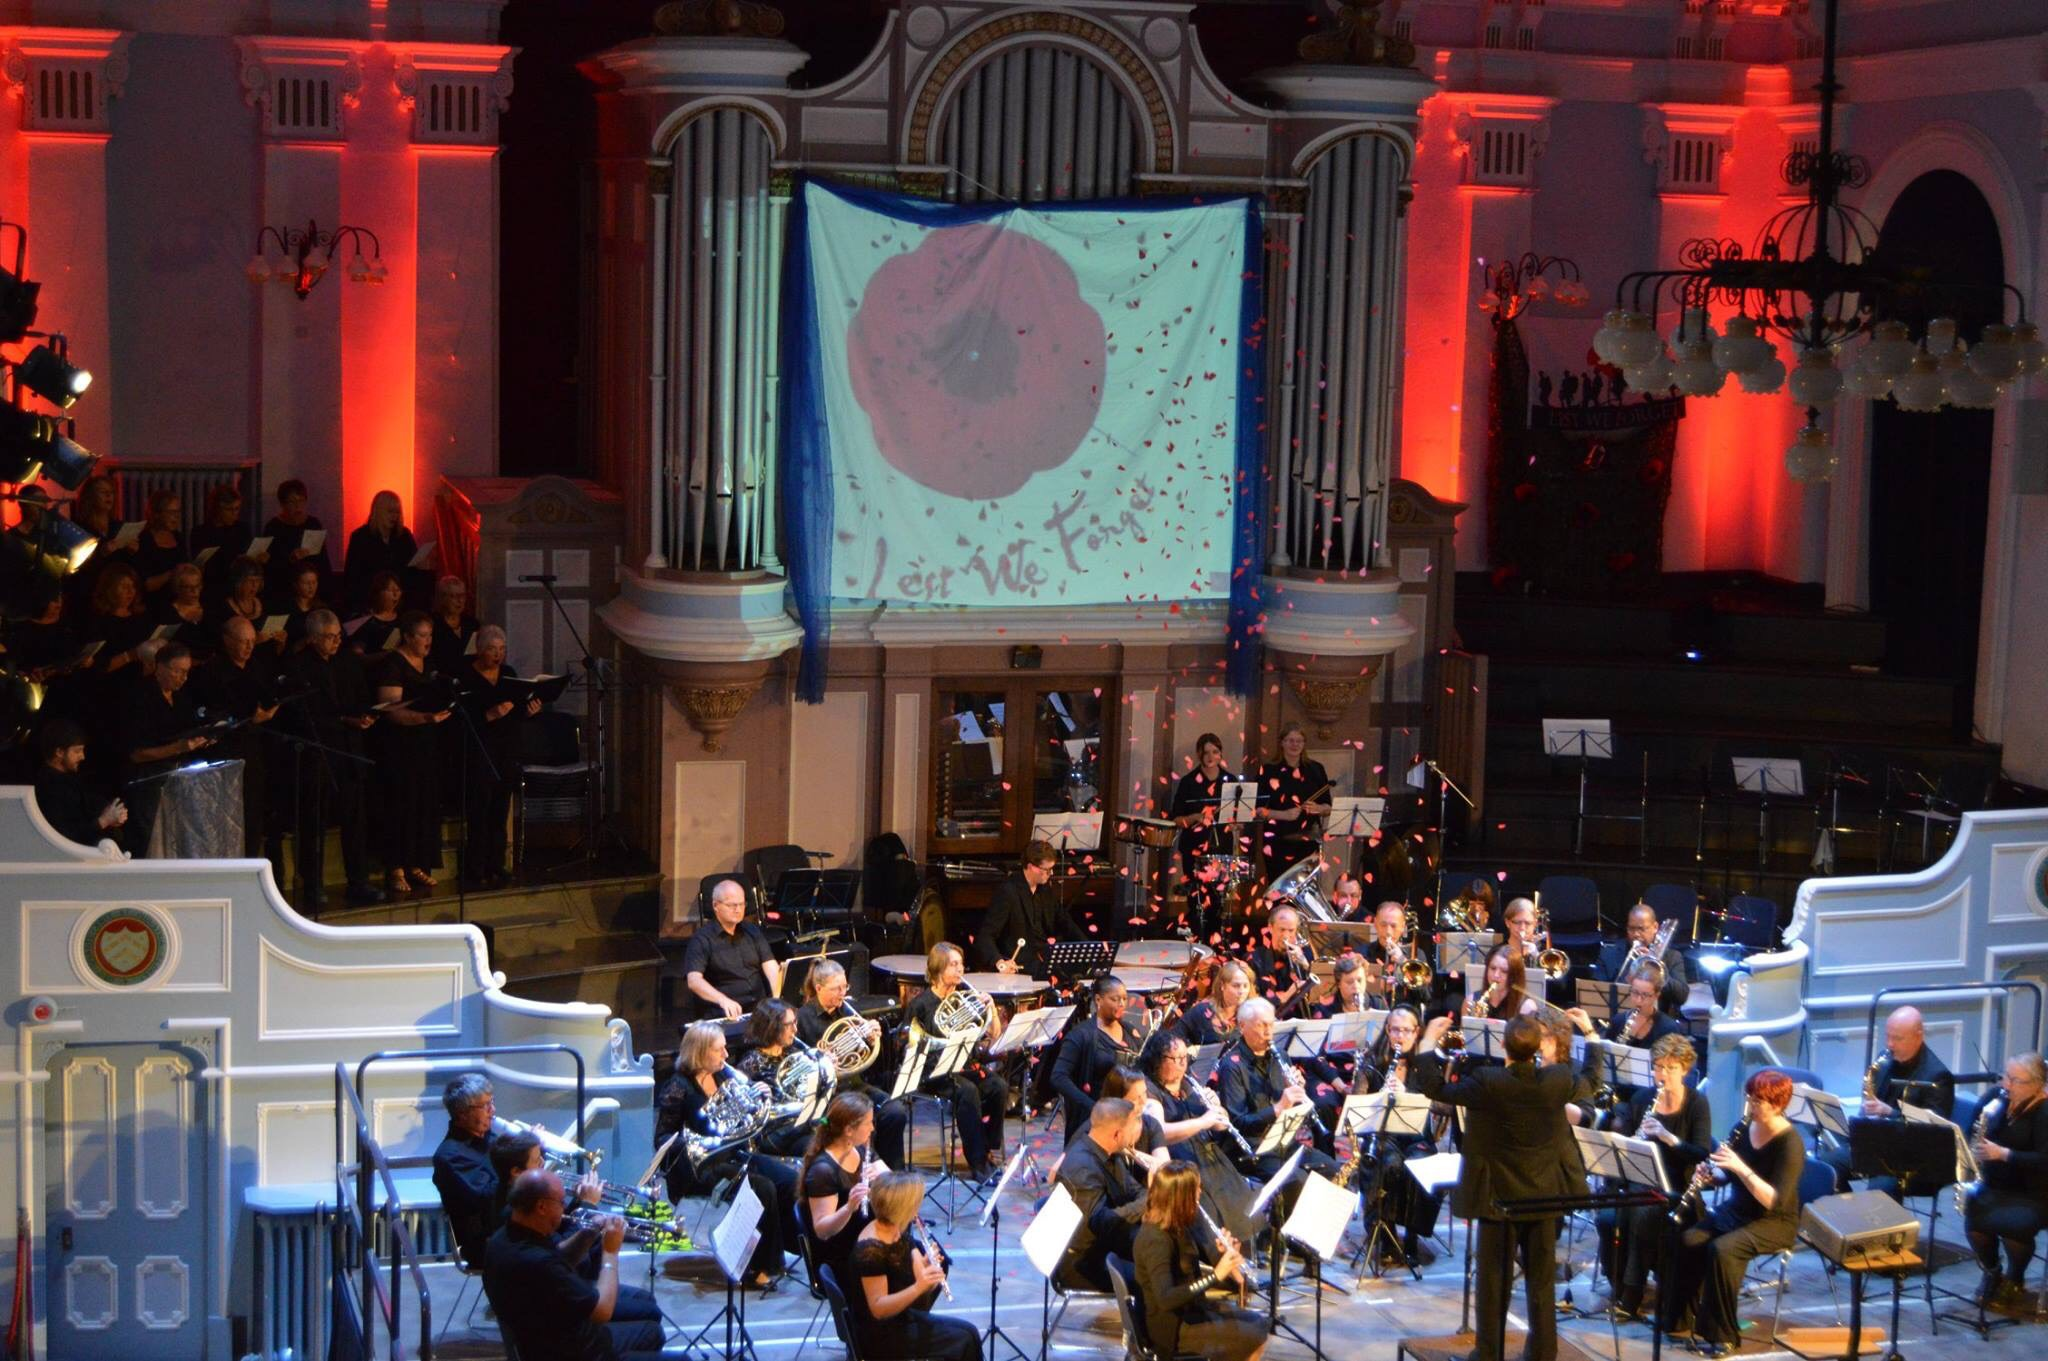 The Film Orchestra perform music by John Williams